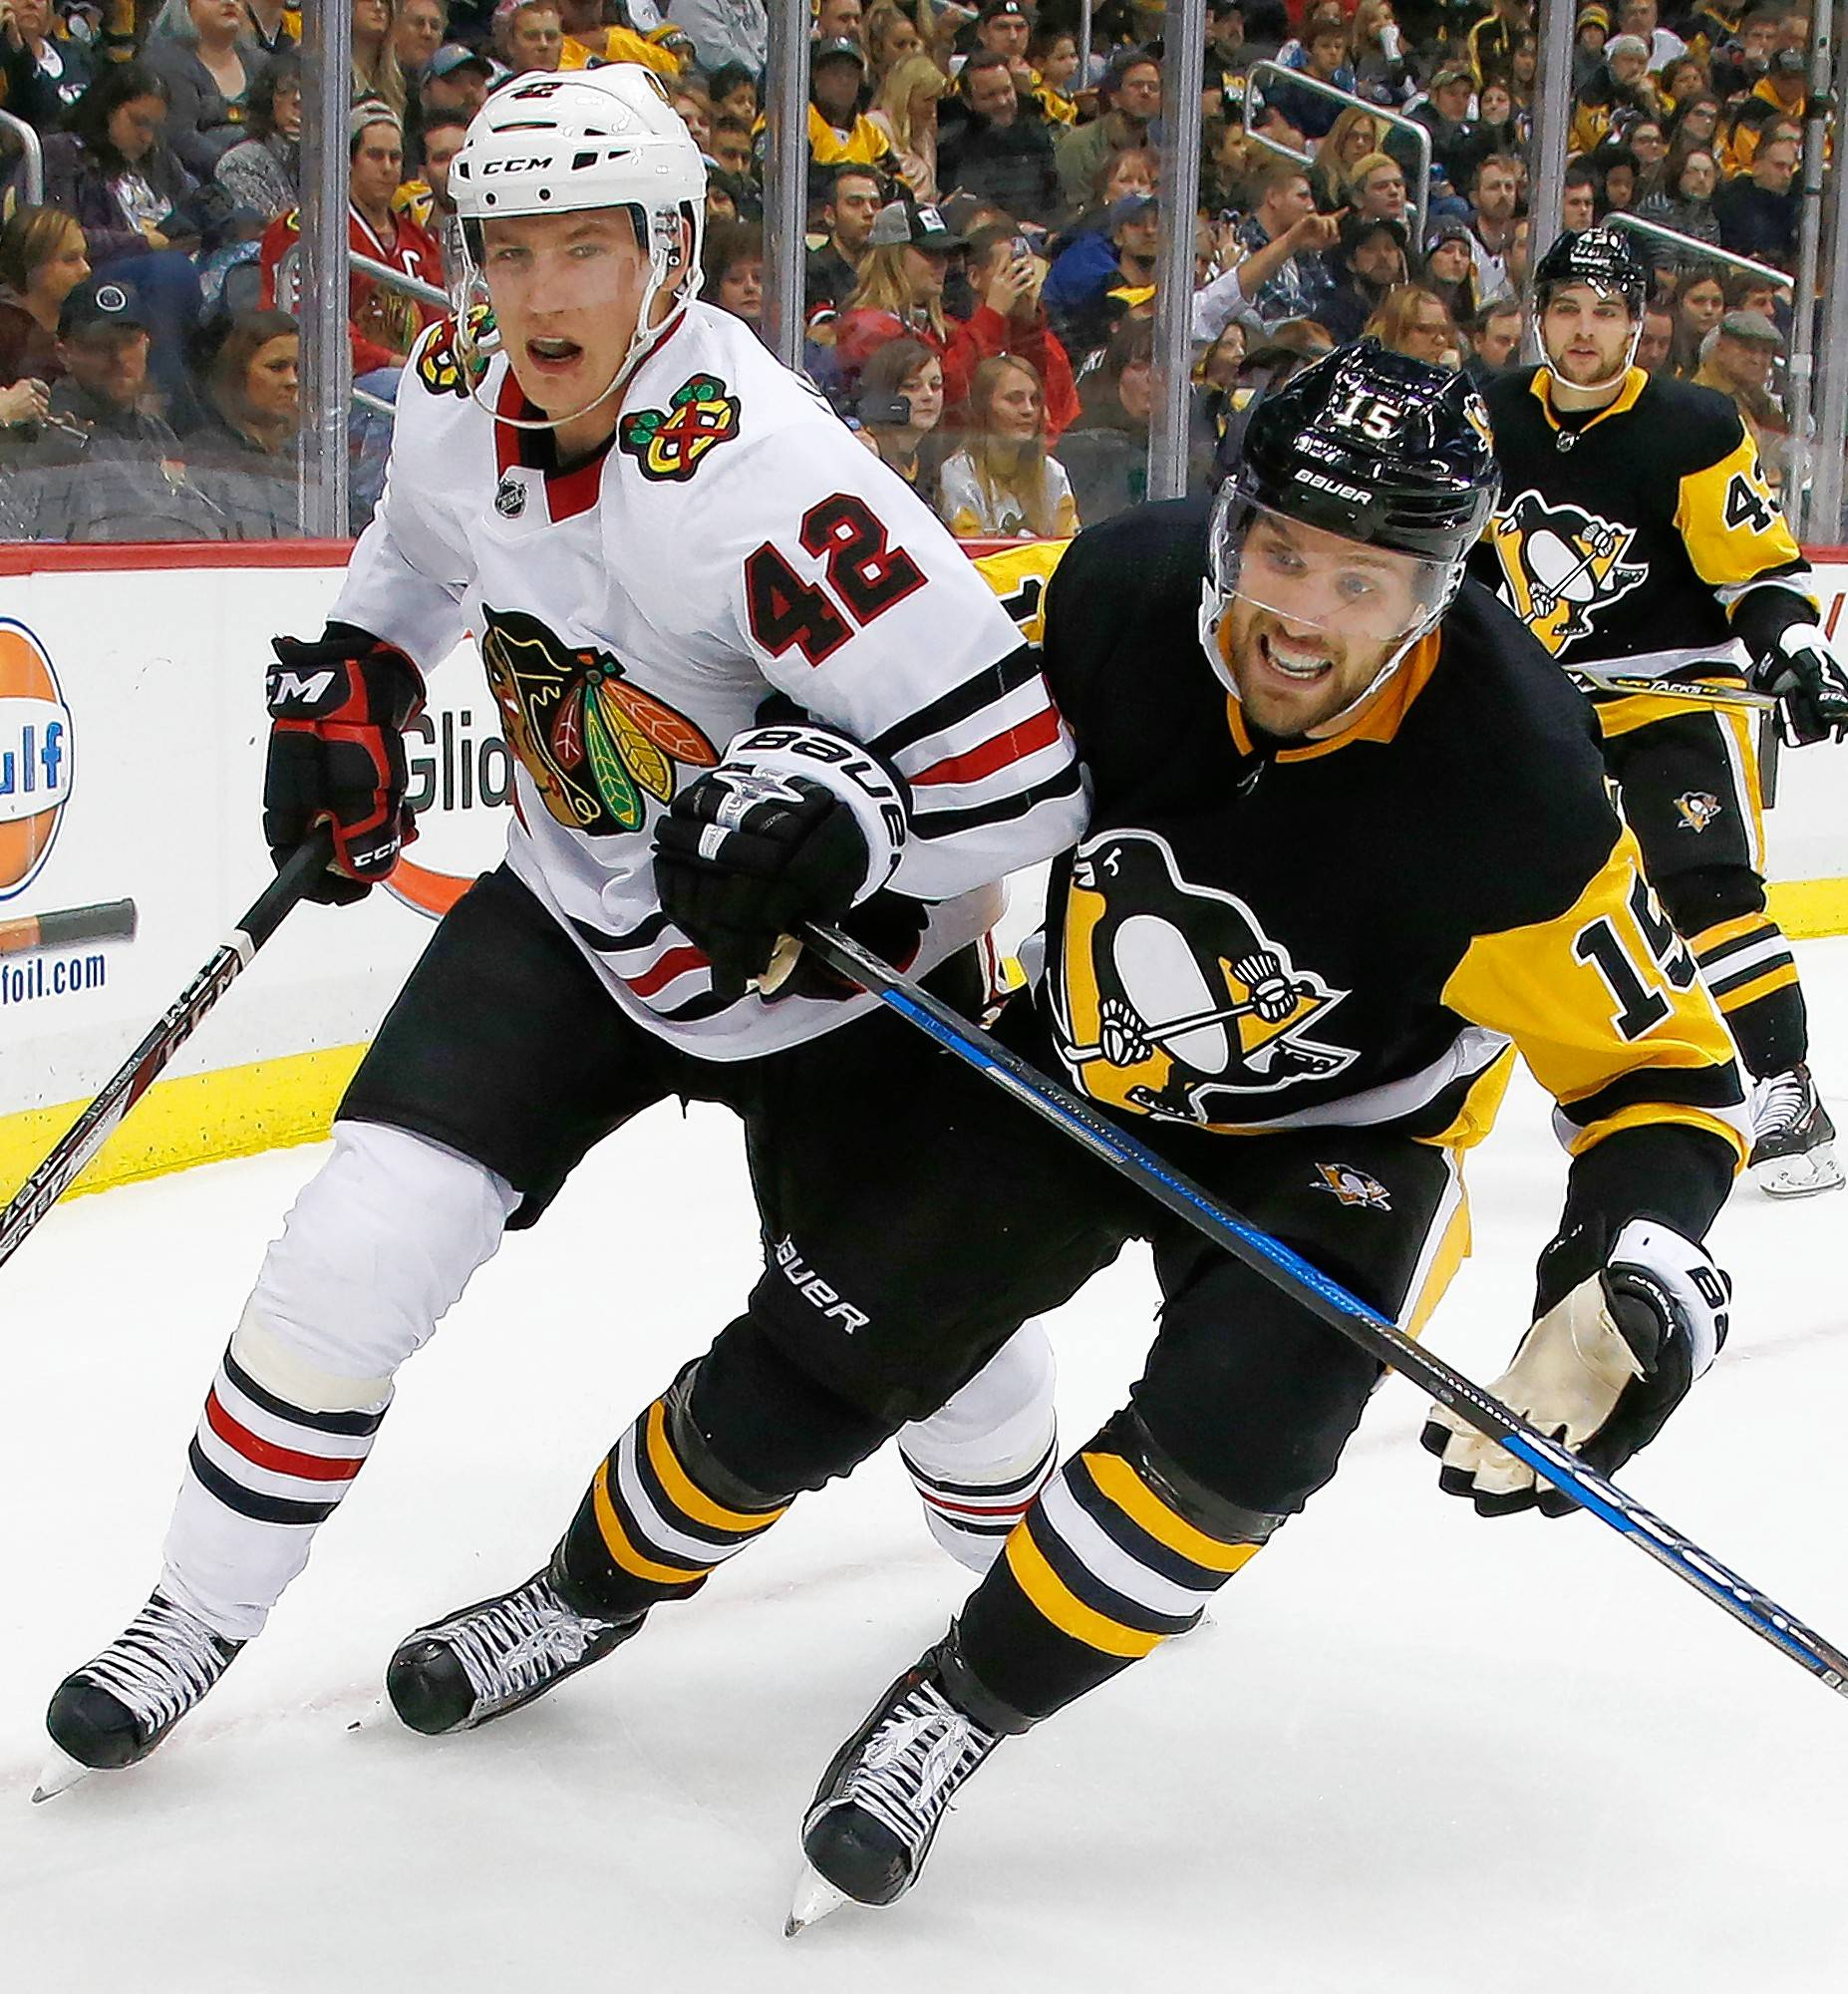 Pittsburgh Penguins' Riley Sheahan (15) and Blackhawks' defenseman Gustav Forsling (42) work in the corner during a 2017 game. The Blackhawks' decision to call Gustav Forsling up from Rockford means the team will be carrying eight defensemen. It's not a common strategy among NHL teams, but coach Jeremy Colliton believes the competition could benefit his squad in the long run.